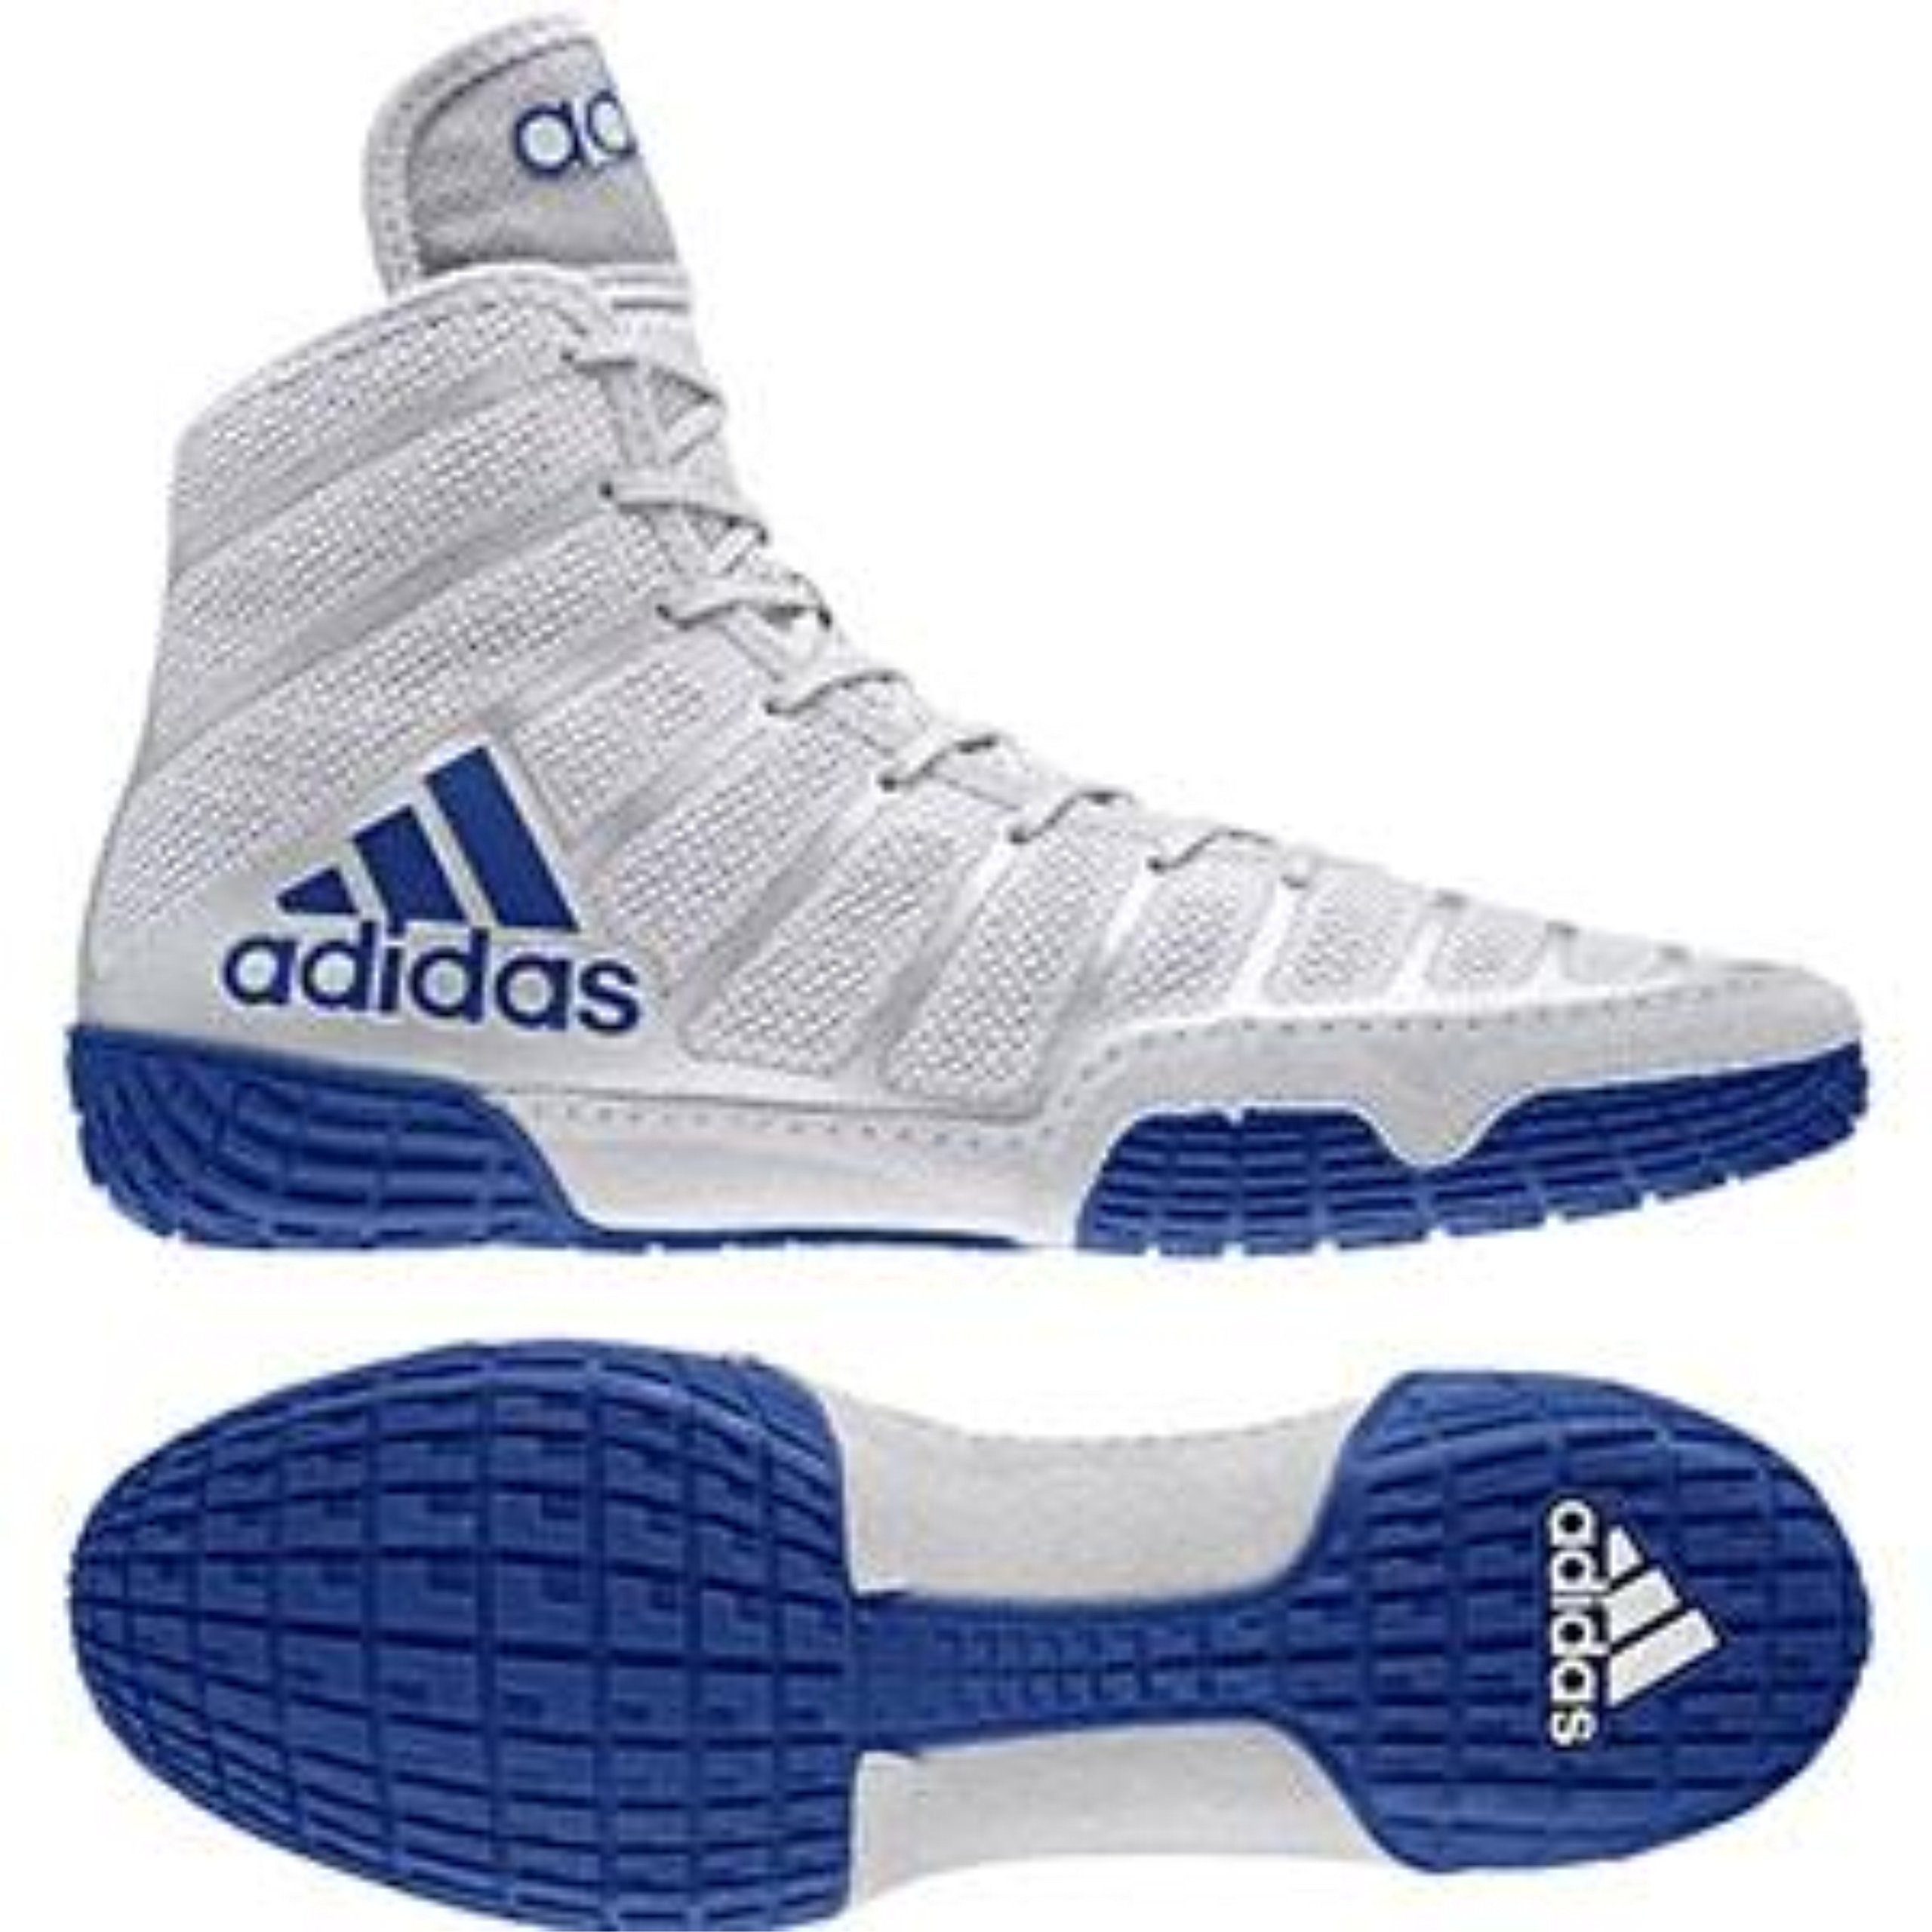 adidas adiZero Varner Mens Wrestling Shoes, Grey/Royal/White Size 7.5